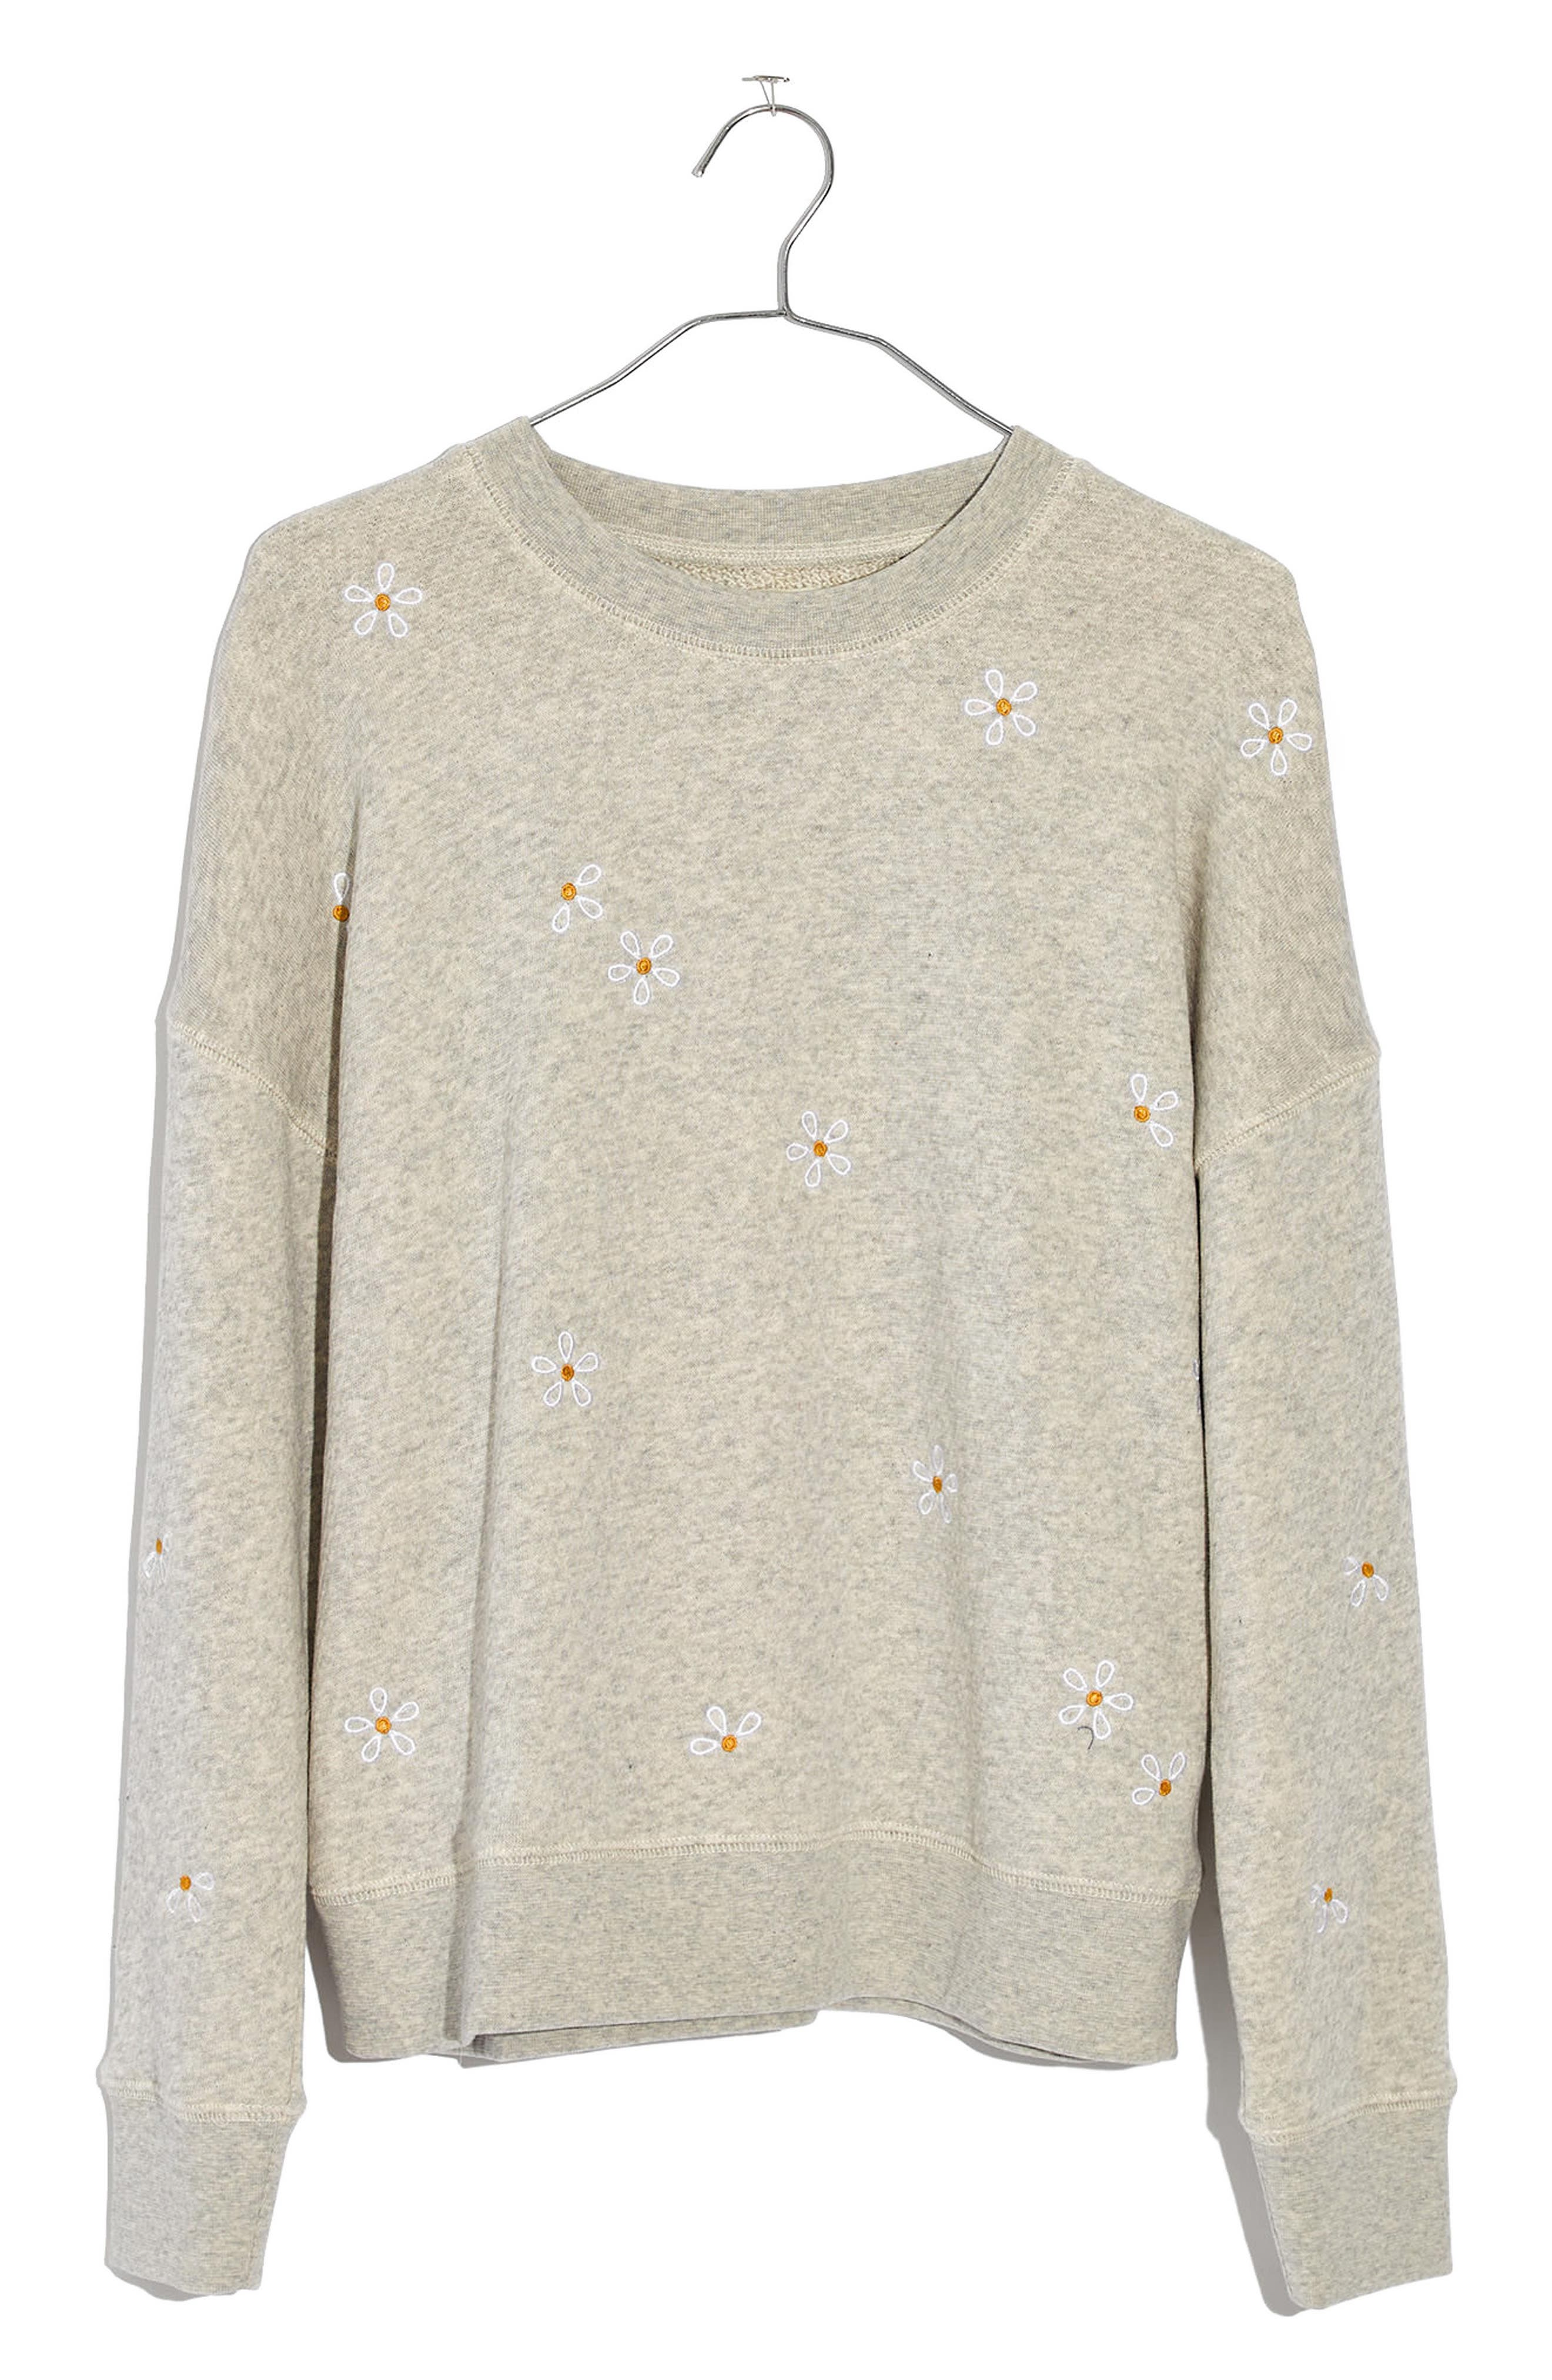 Daisy Embroidered Sweatshirt,                             Alternate thumbnail 4, color,                             Hthr Pearl